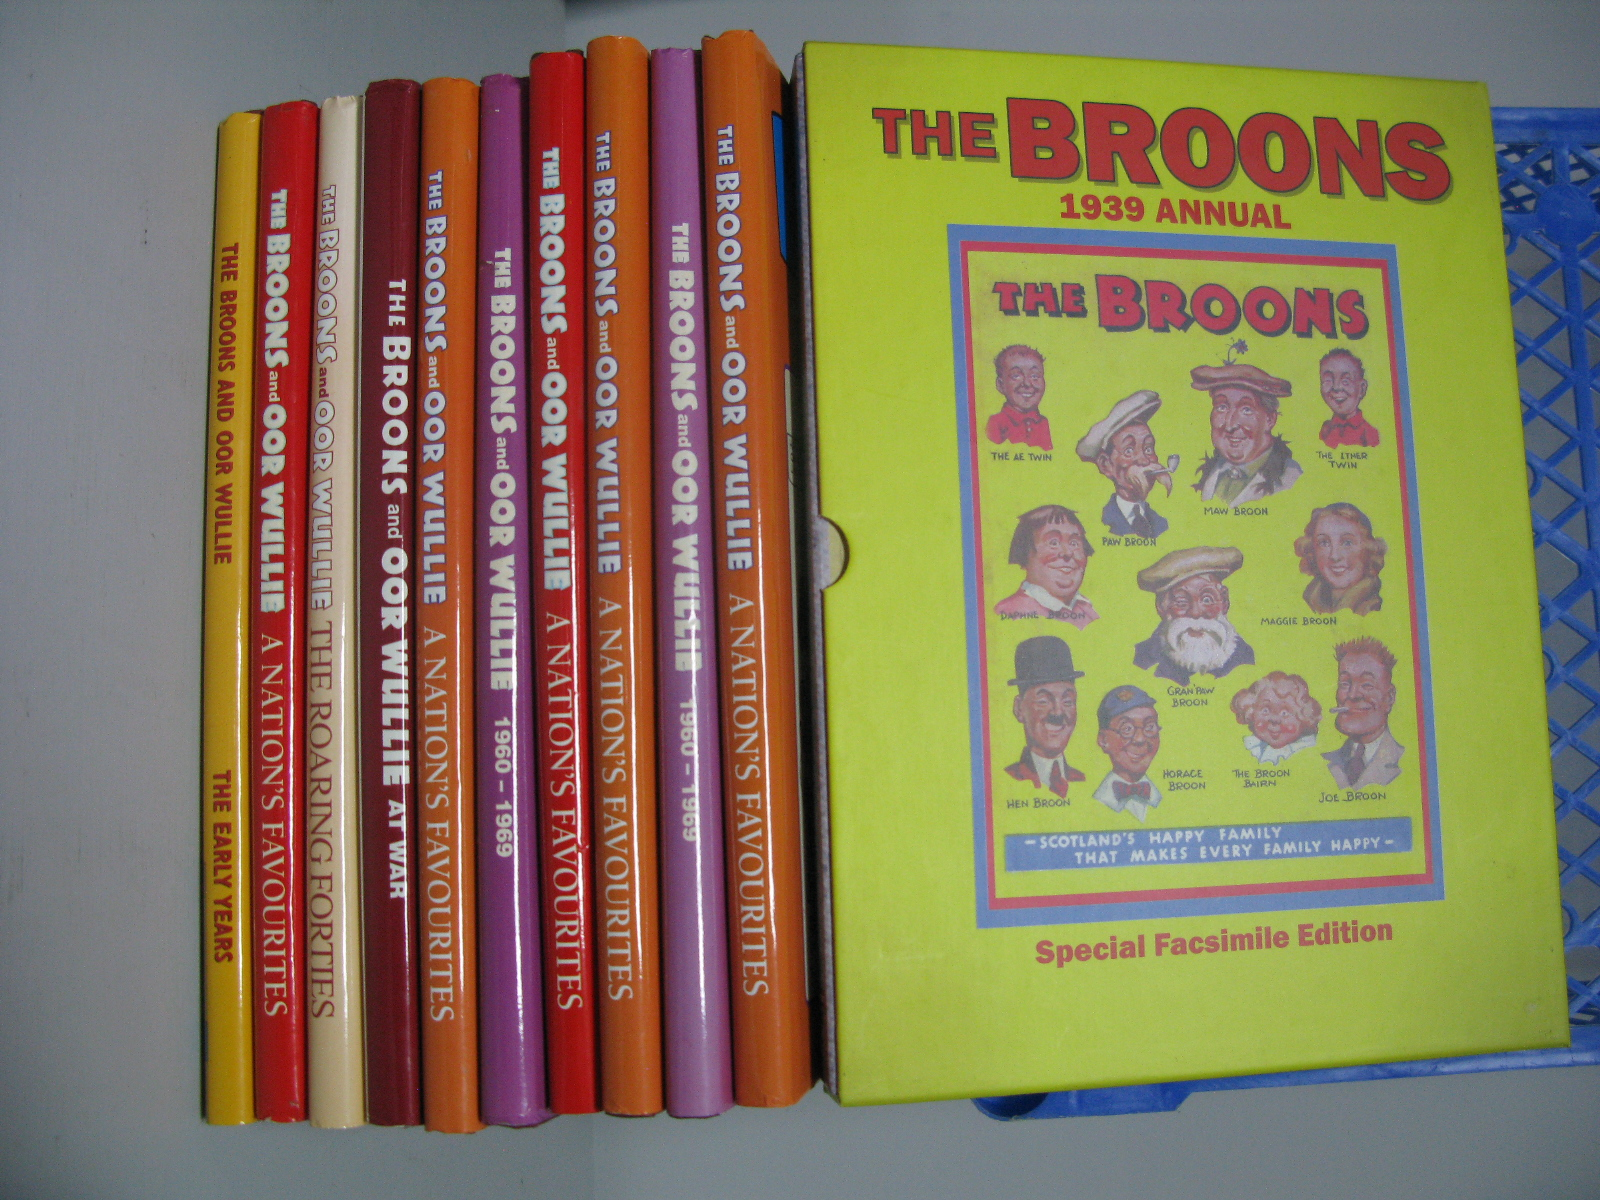 Eleven Facsimile Annuals Relating to 'The Broons' and OOR Wullie', some duplication noted.